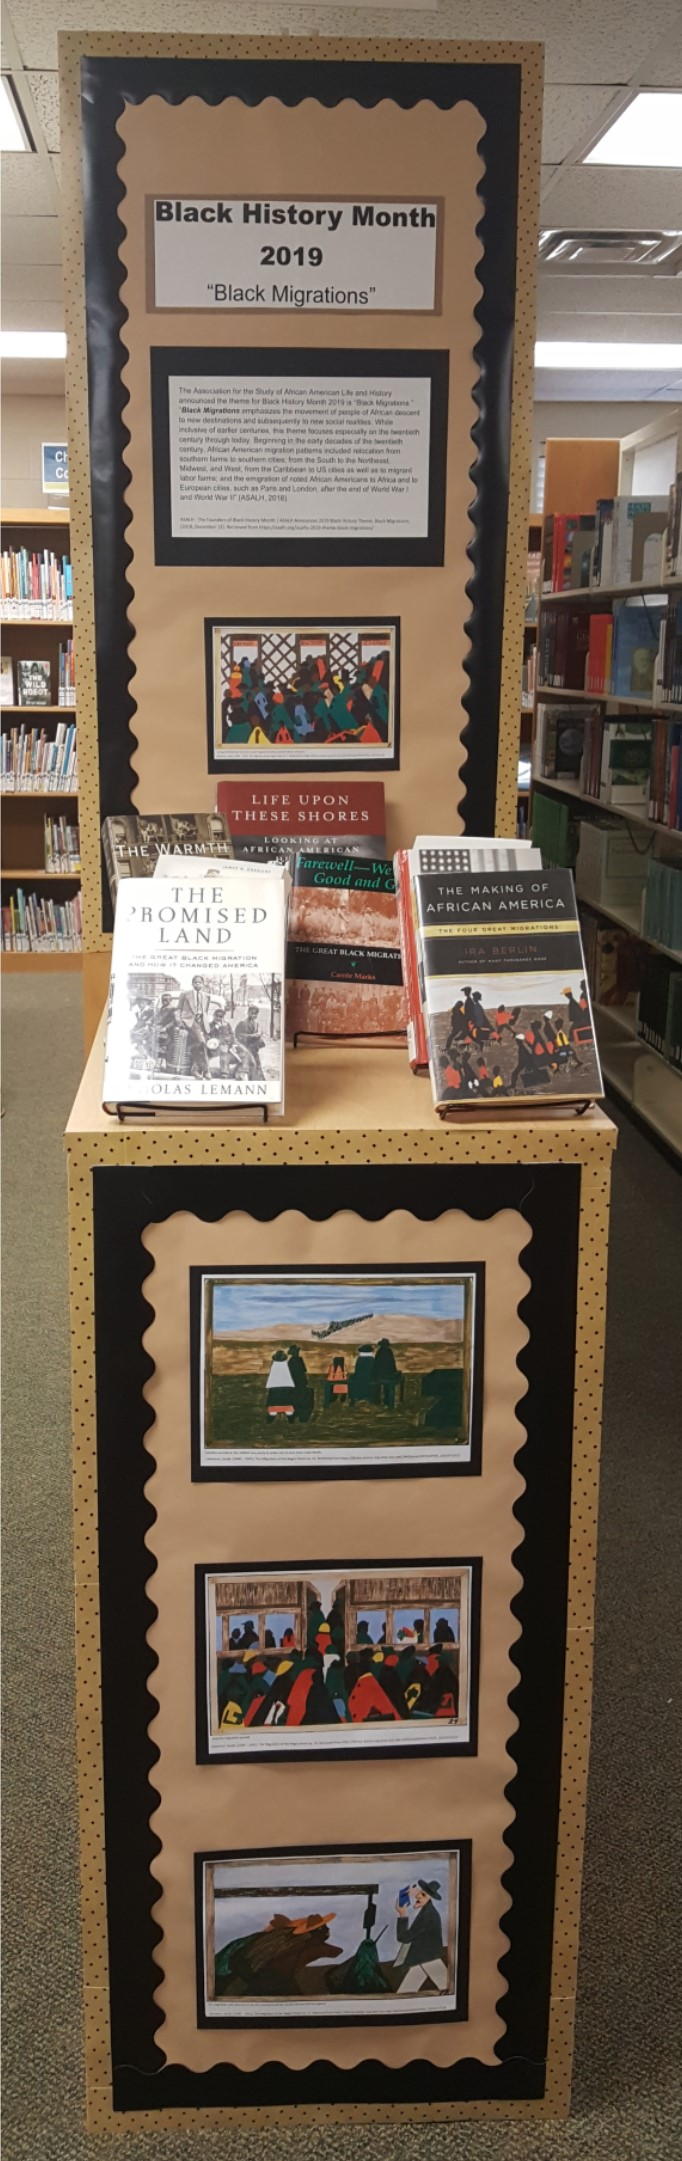 Image:  Display_Black History Month Feb. 2019